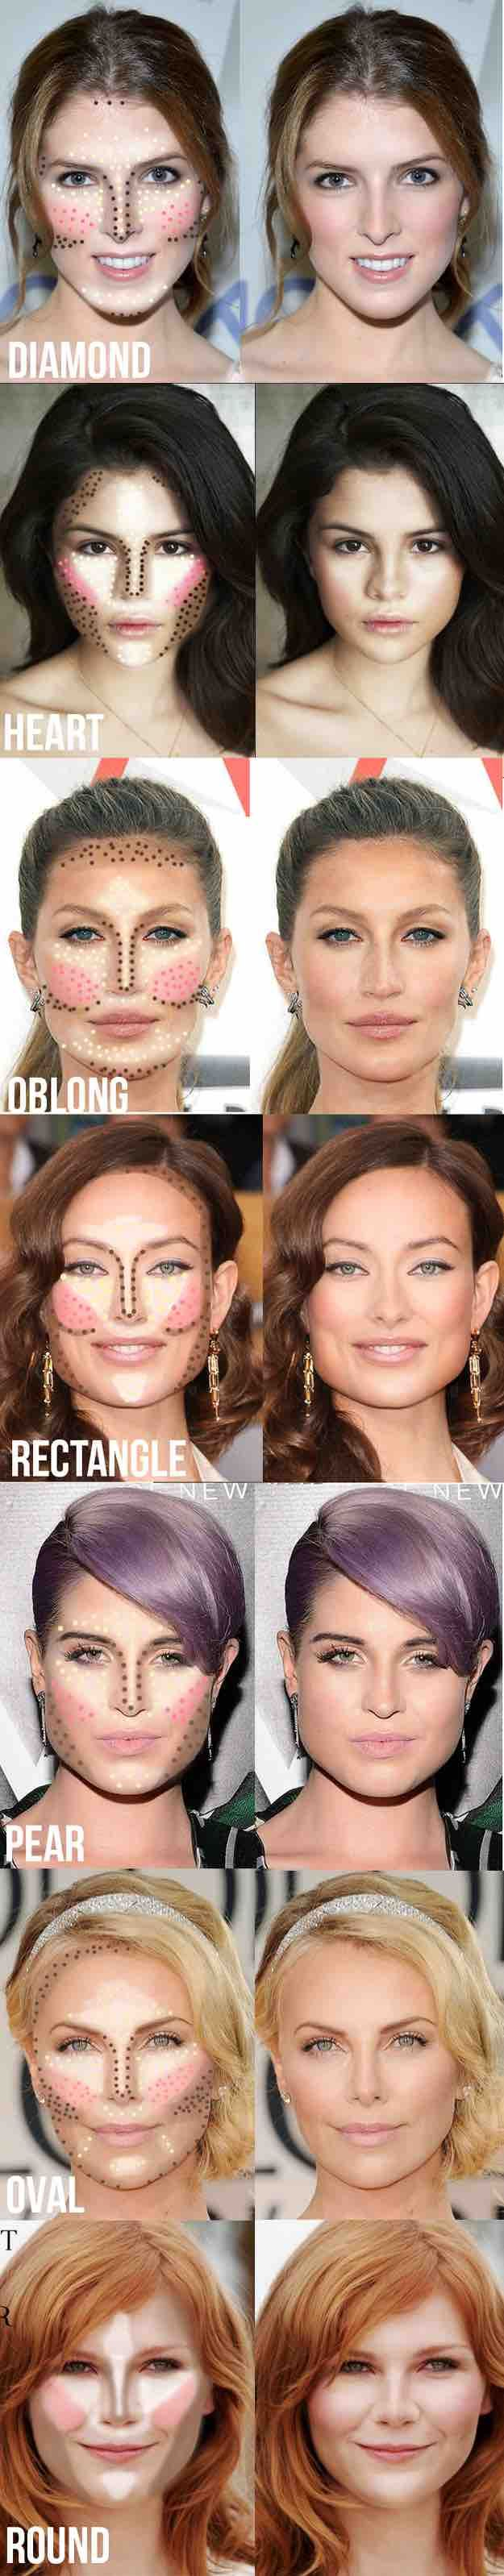 The perfect guide on how to contour and highlight based on your face shape. Image via Makeup Tutorials